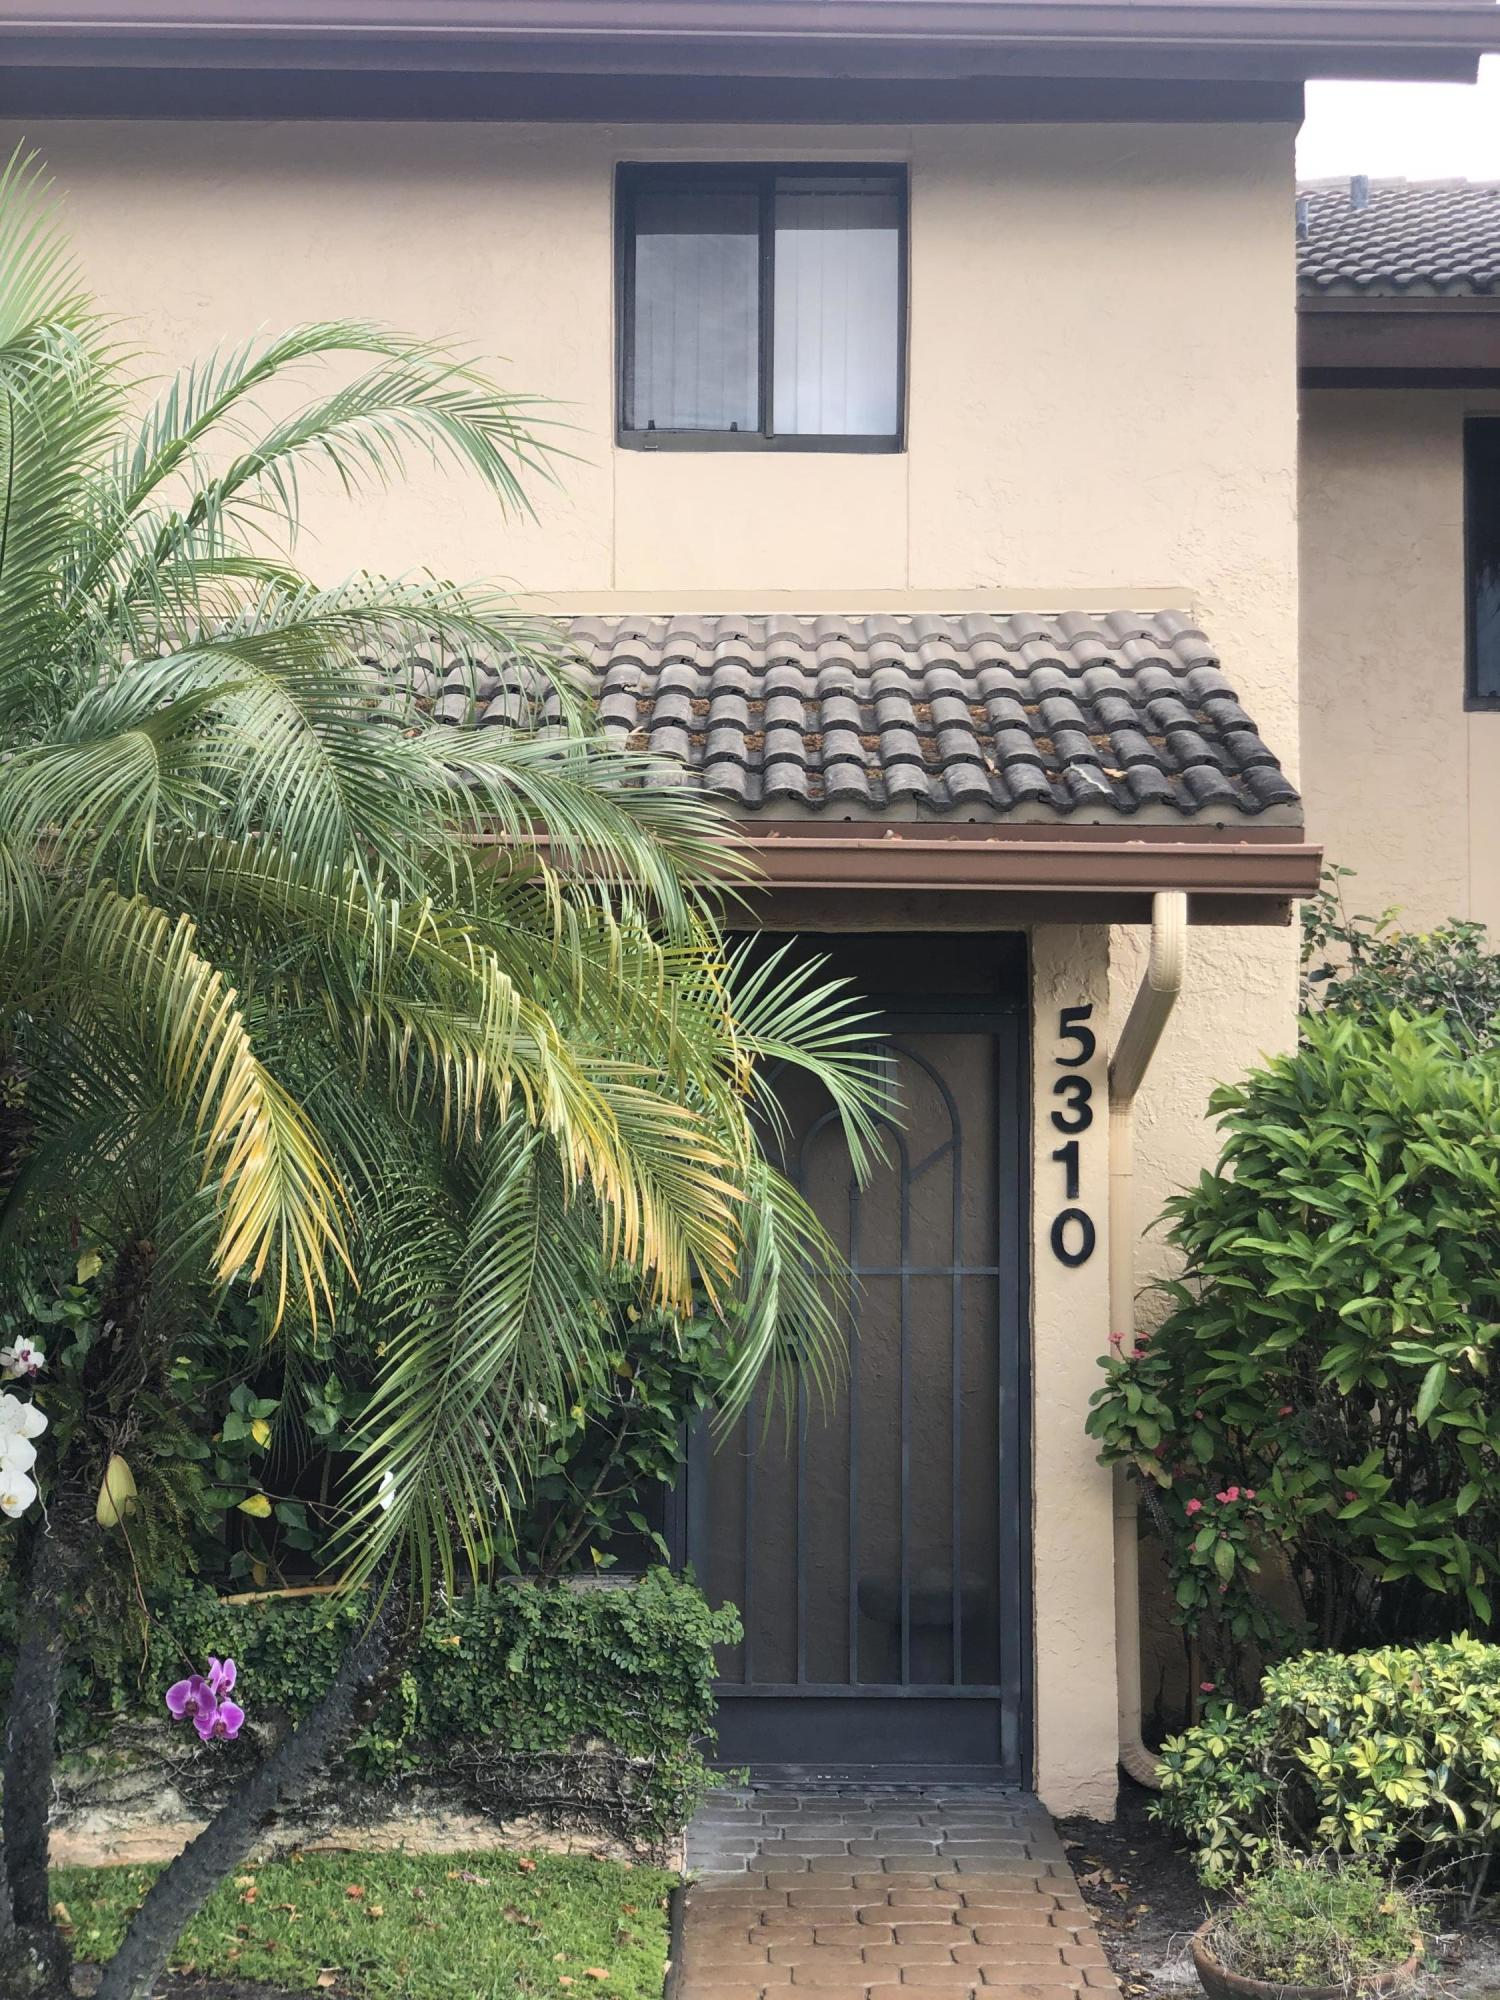 5310 Fountains Drive, Lake Worth, Florida 33467, 2 Bedrooms Bedrooms, ,2 BathroomsBathrooms,Rental,For Rent,Fountains,RX-10703246